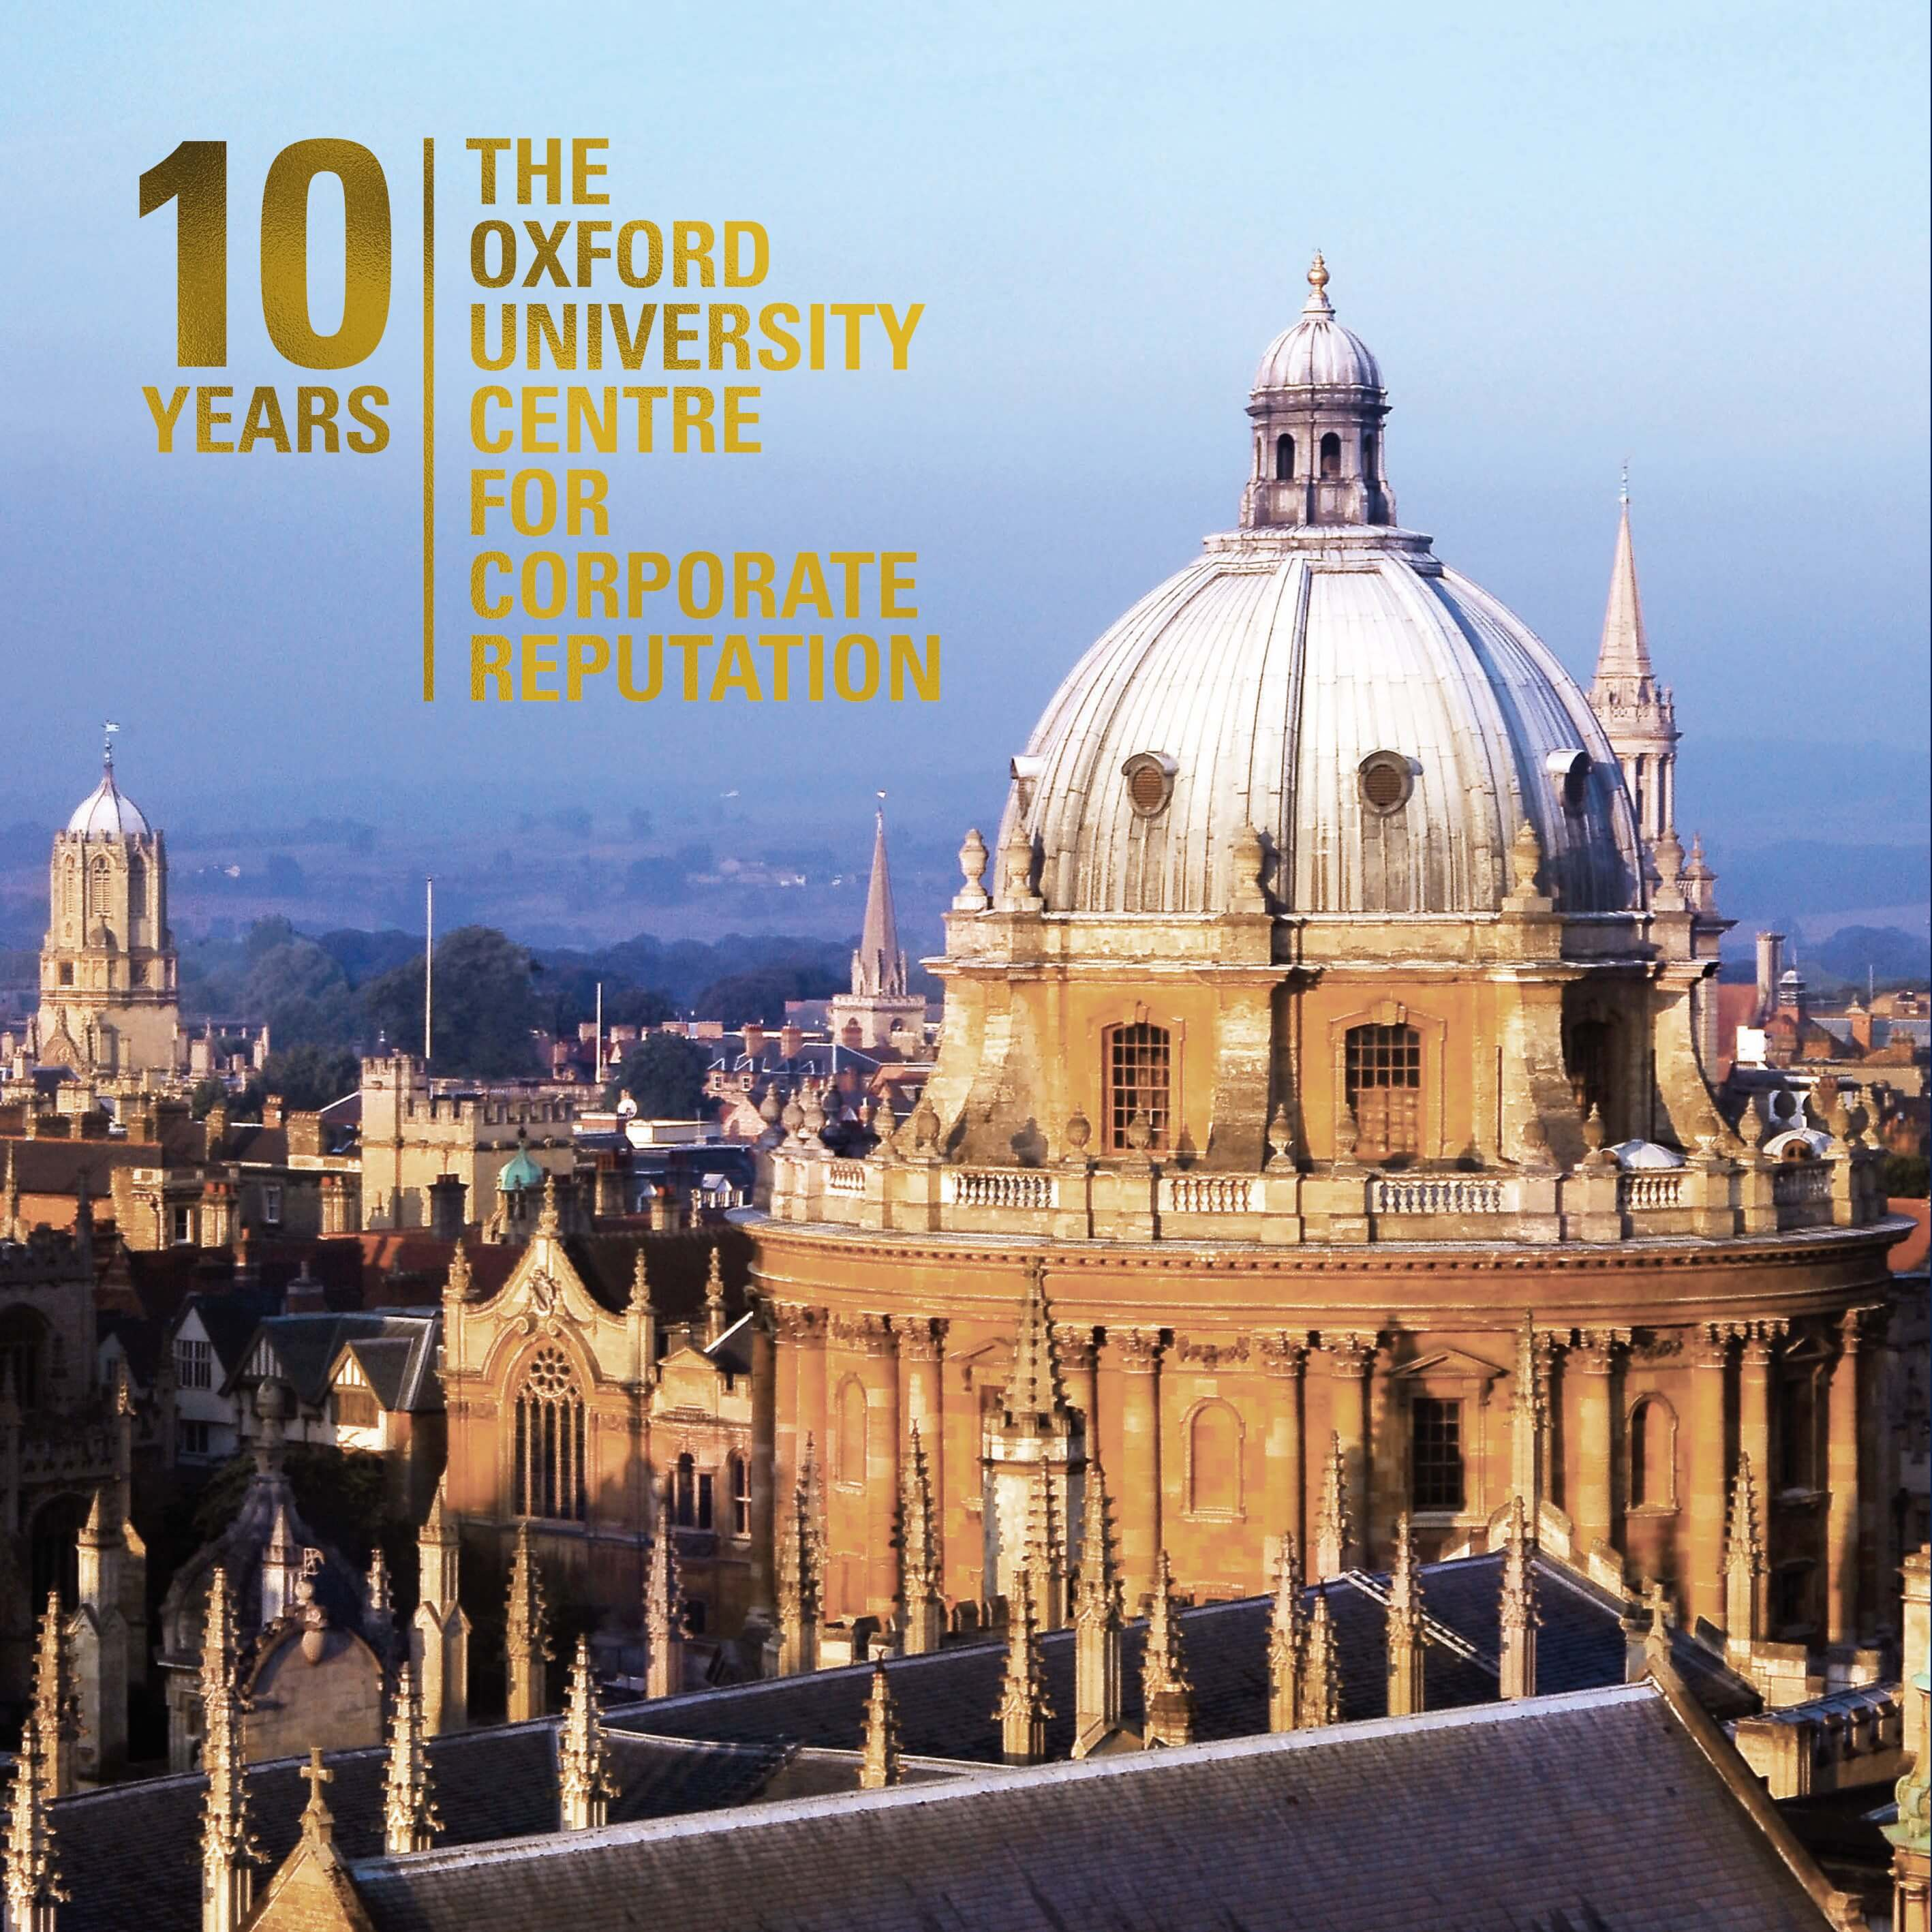 10 Years: The Oxford University Centre for Corporate Reputation